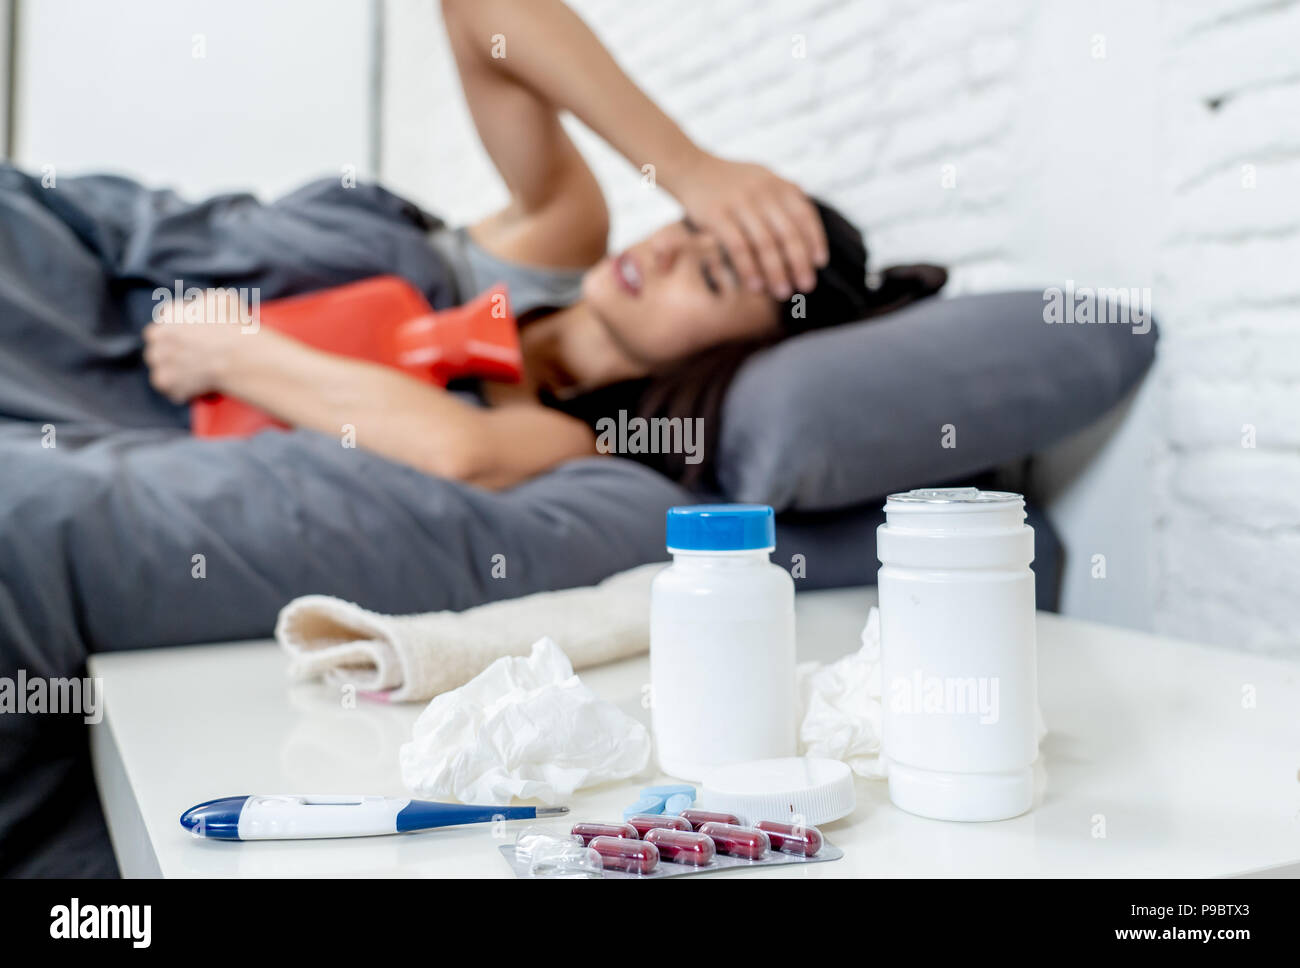 Sick hispanic woman in bed calling in sick day off from work thermometer to check temperature for fever and vitamins hot water bottle and tissues in c - Stock Image